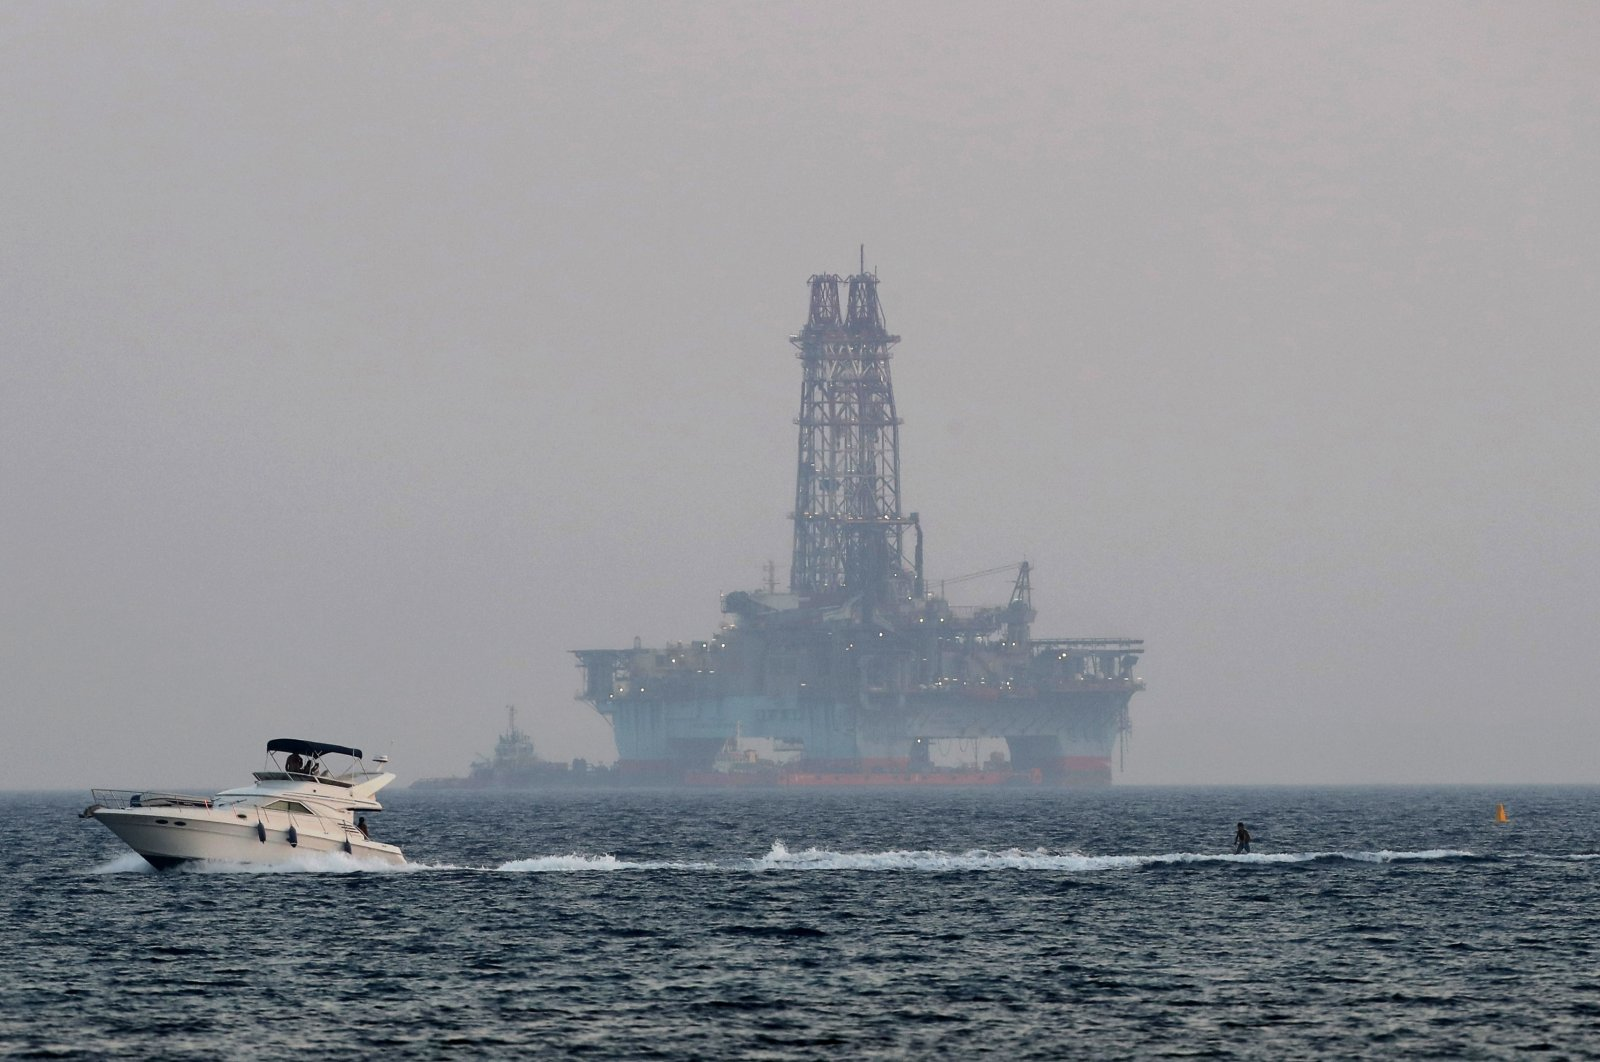 An offshore drilling rig is seen in the waters off Cyprus' coastal city of Limassol as a boat passes with a skier, July 5, 2020. (AP Photo)